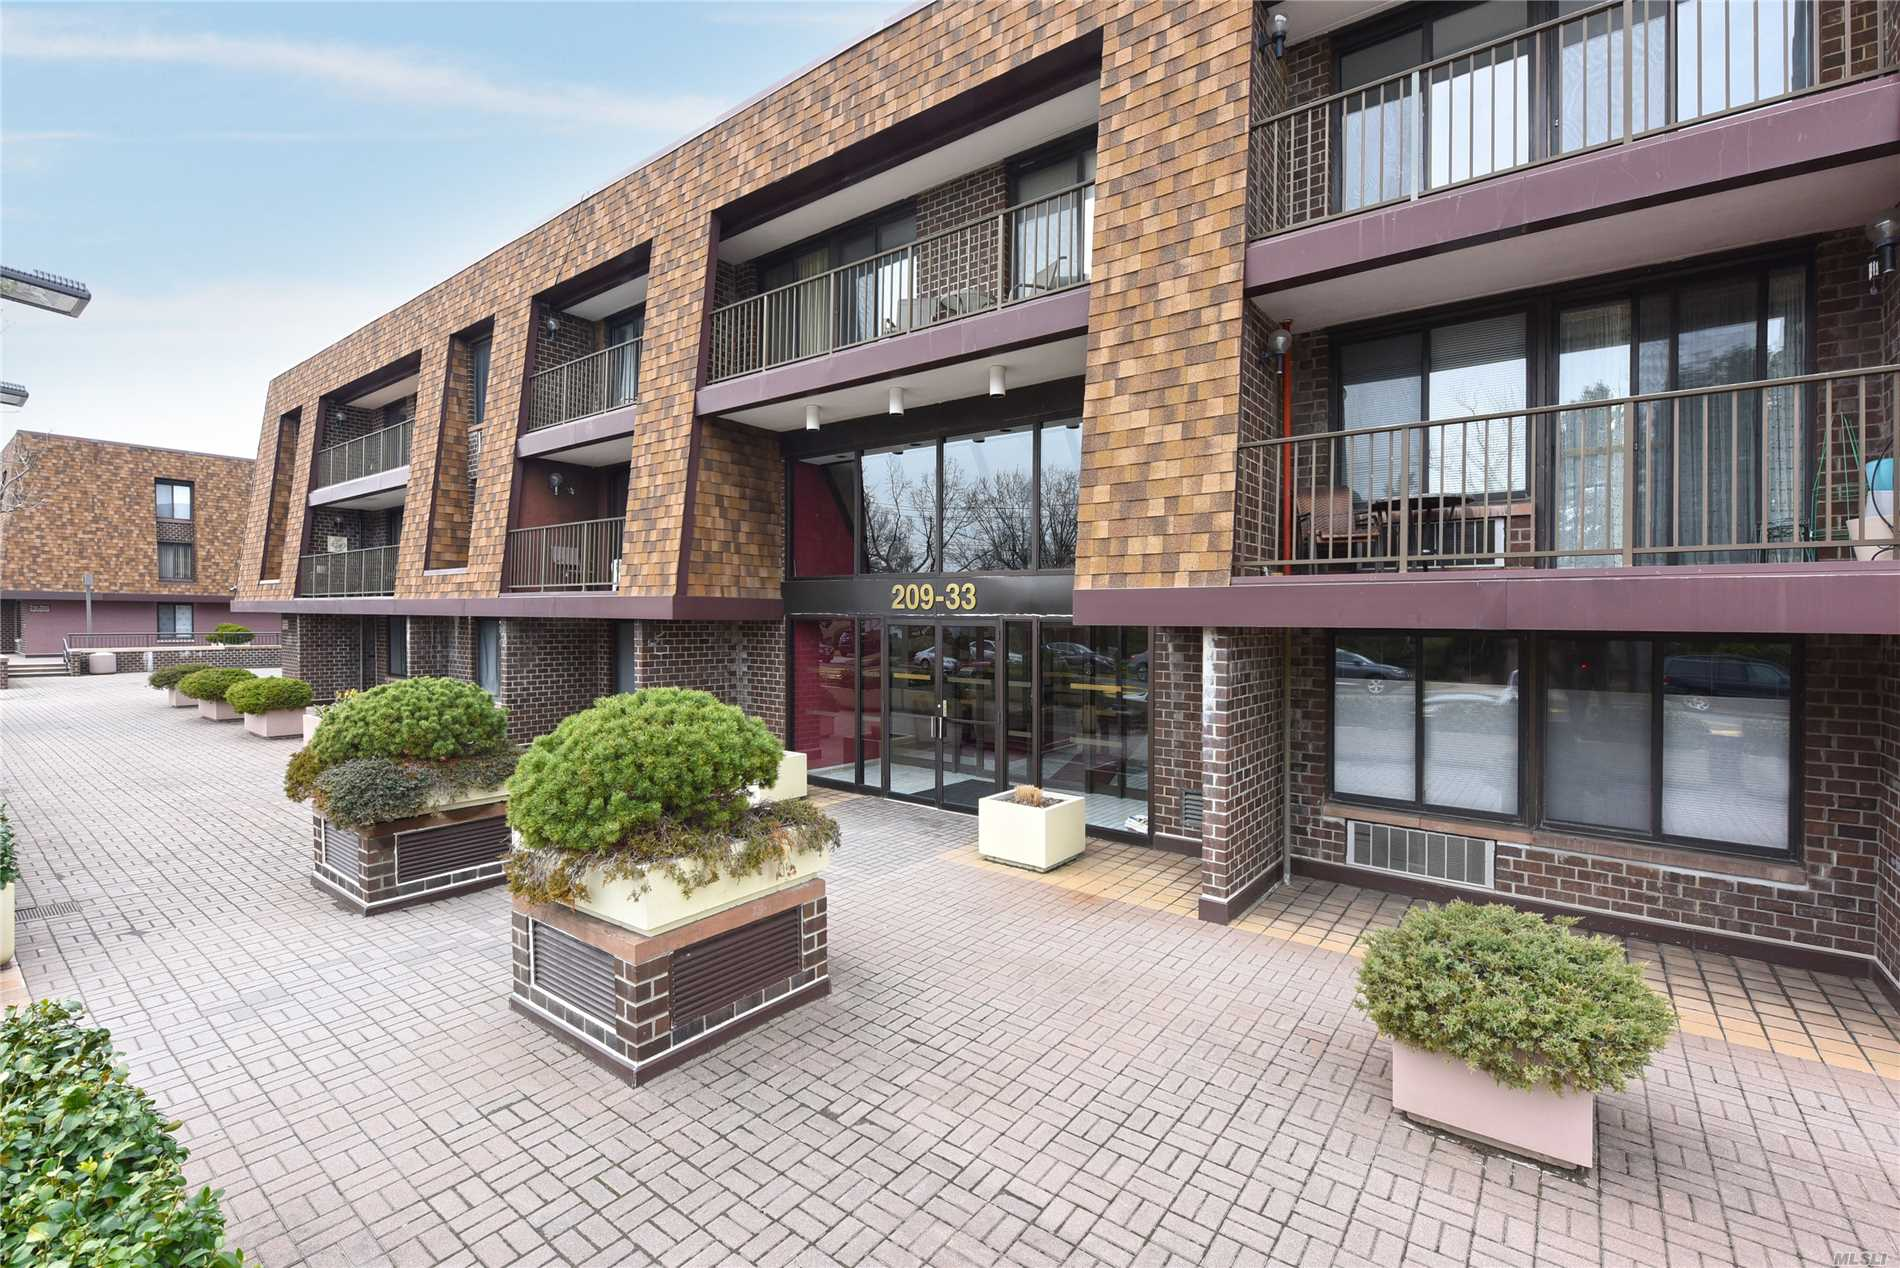 Sunny and bright corner condo for sale. Hardwood floors and washer and dryer in unit. This apartment has large closets. Common charges include water, parking spot in garage, storage room etc. Enjoy indoor/outdoor swimming pool & gym in the Fitness & Tennis Centers and Much Much More!! Express and local bus on the corner. Steps to the Bay Terrace Shopping Center.